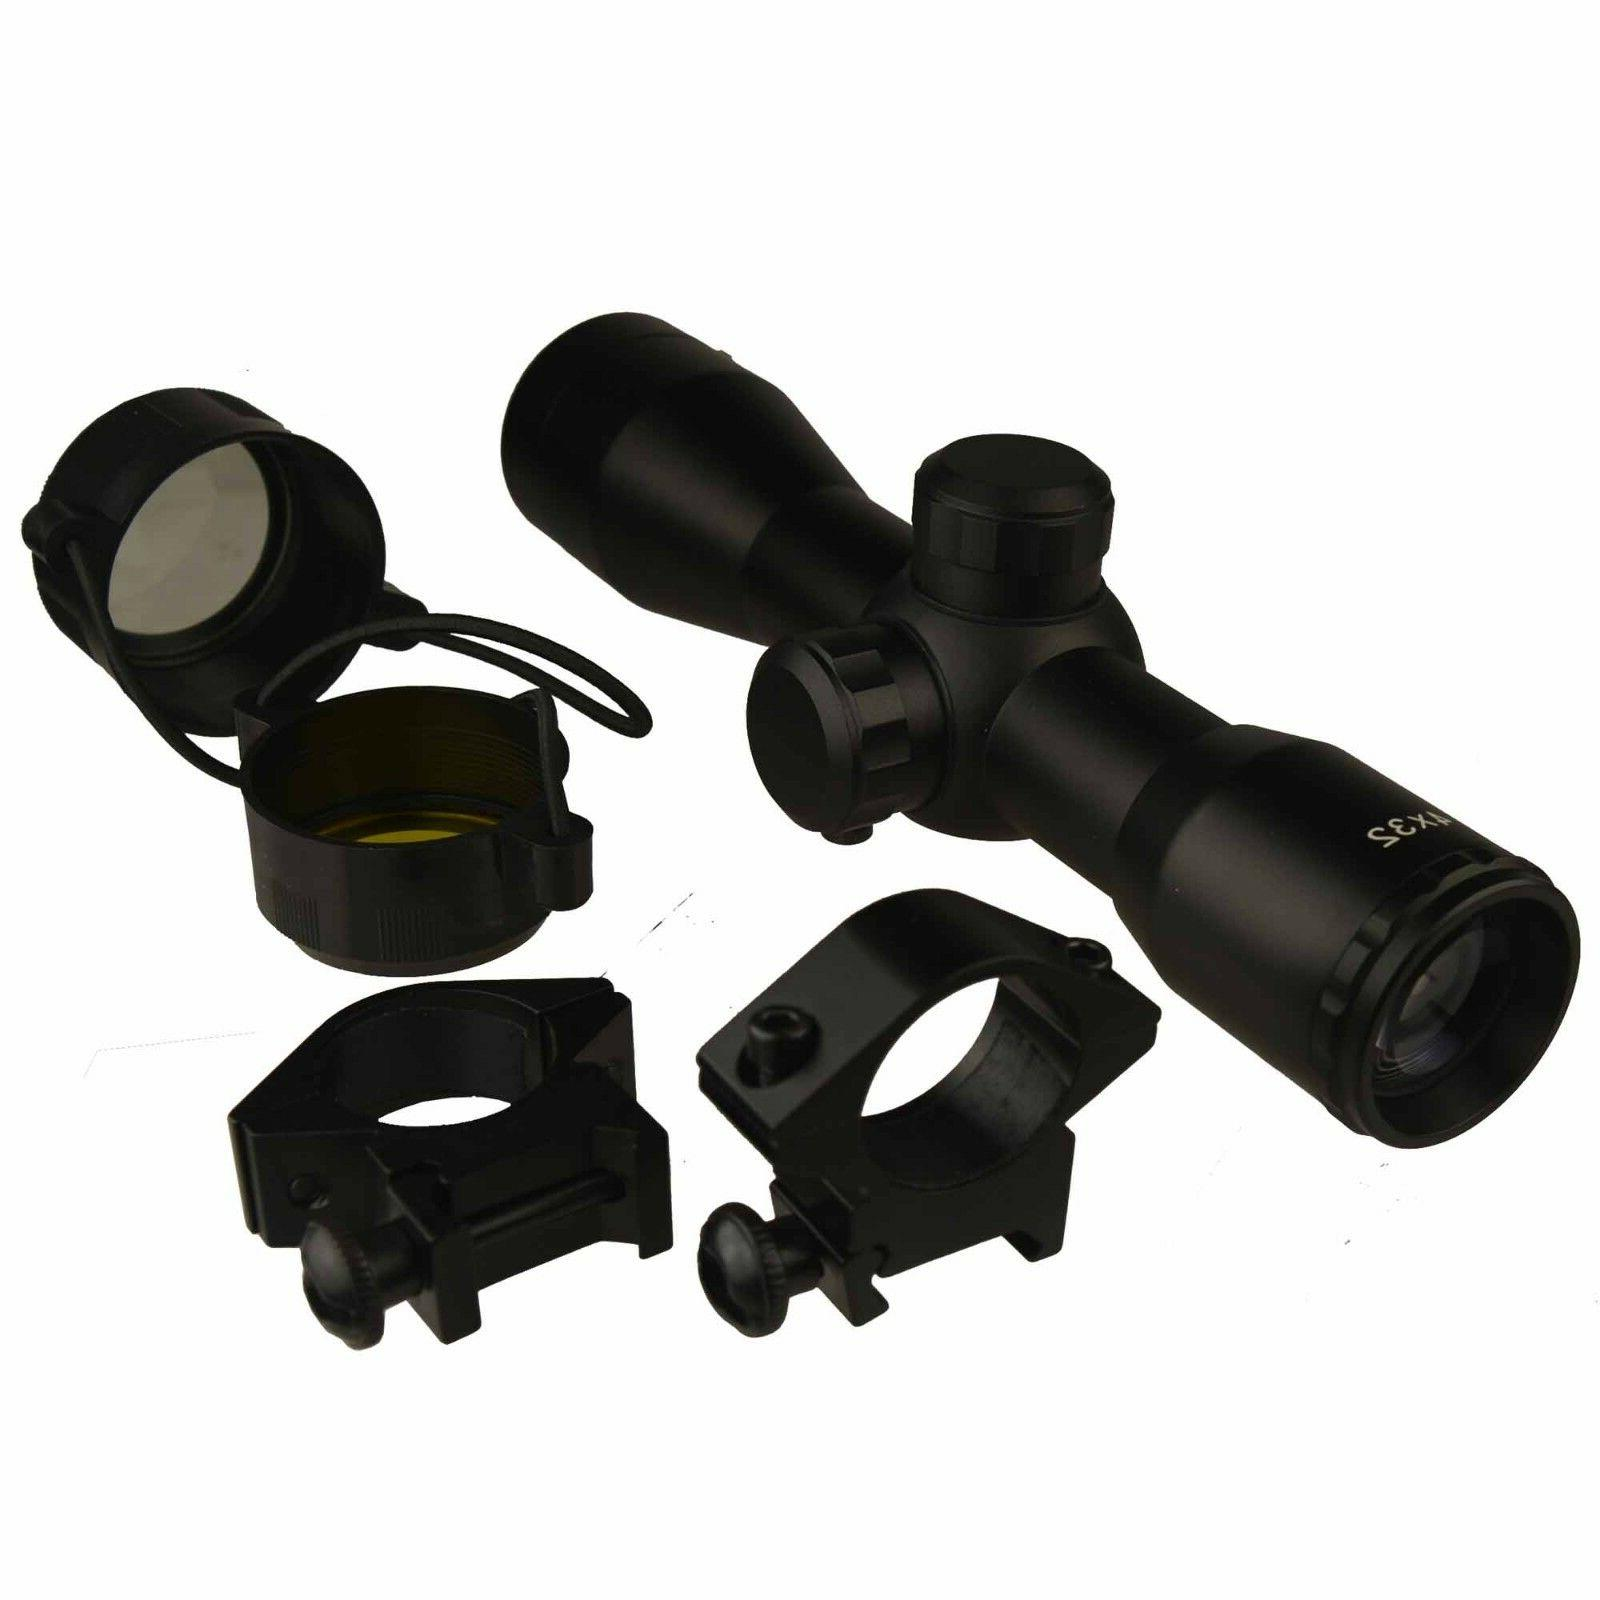 Field Compact .223 7.62x39 Tactical Scope With Ring